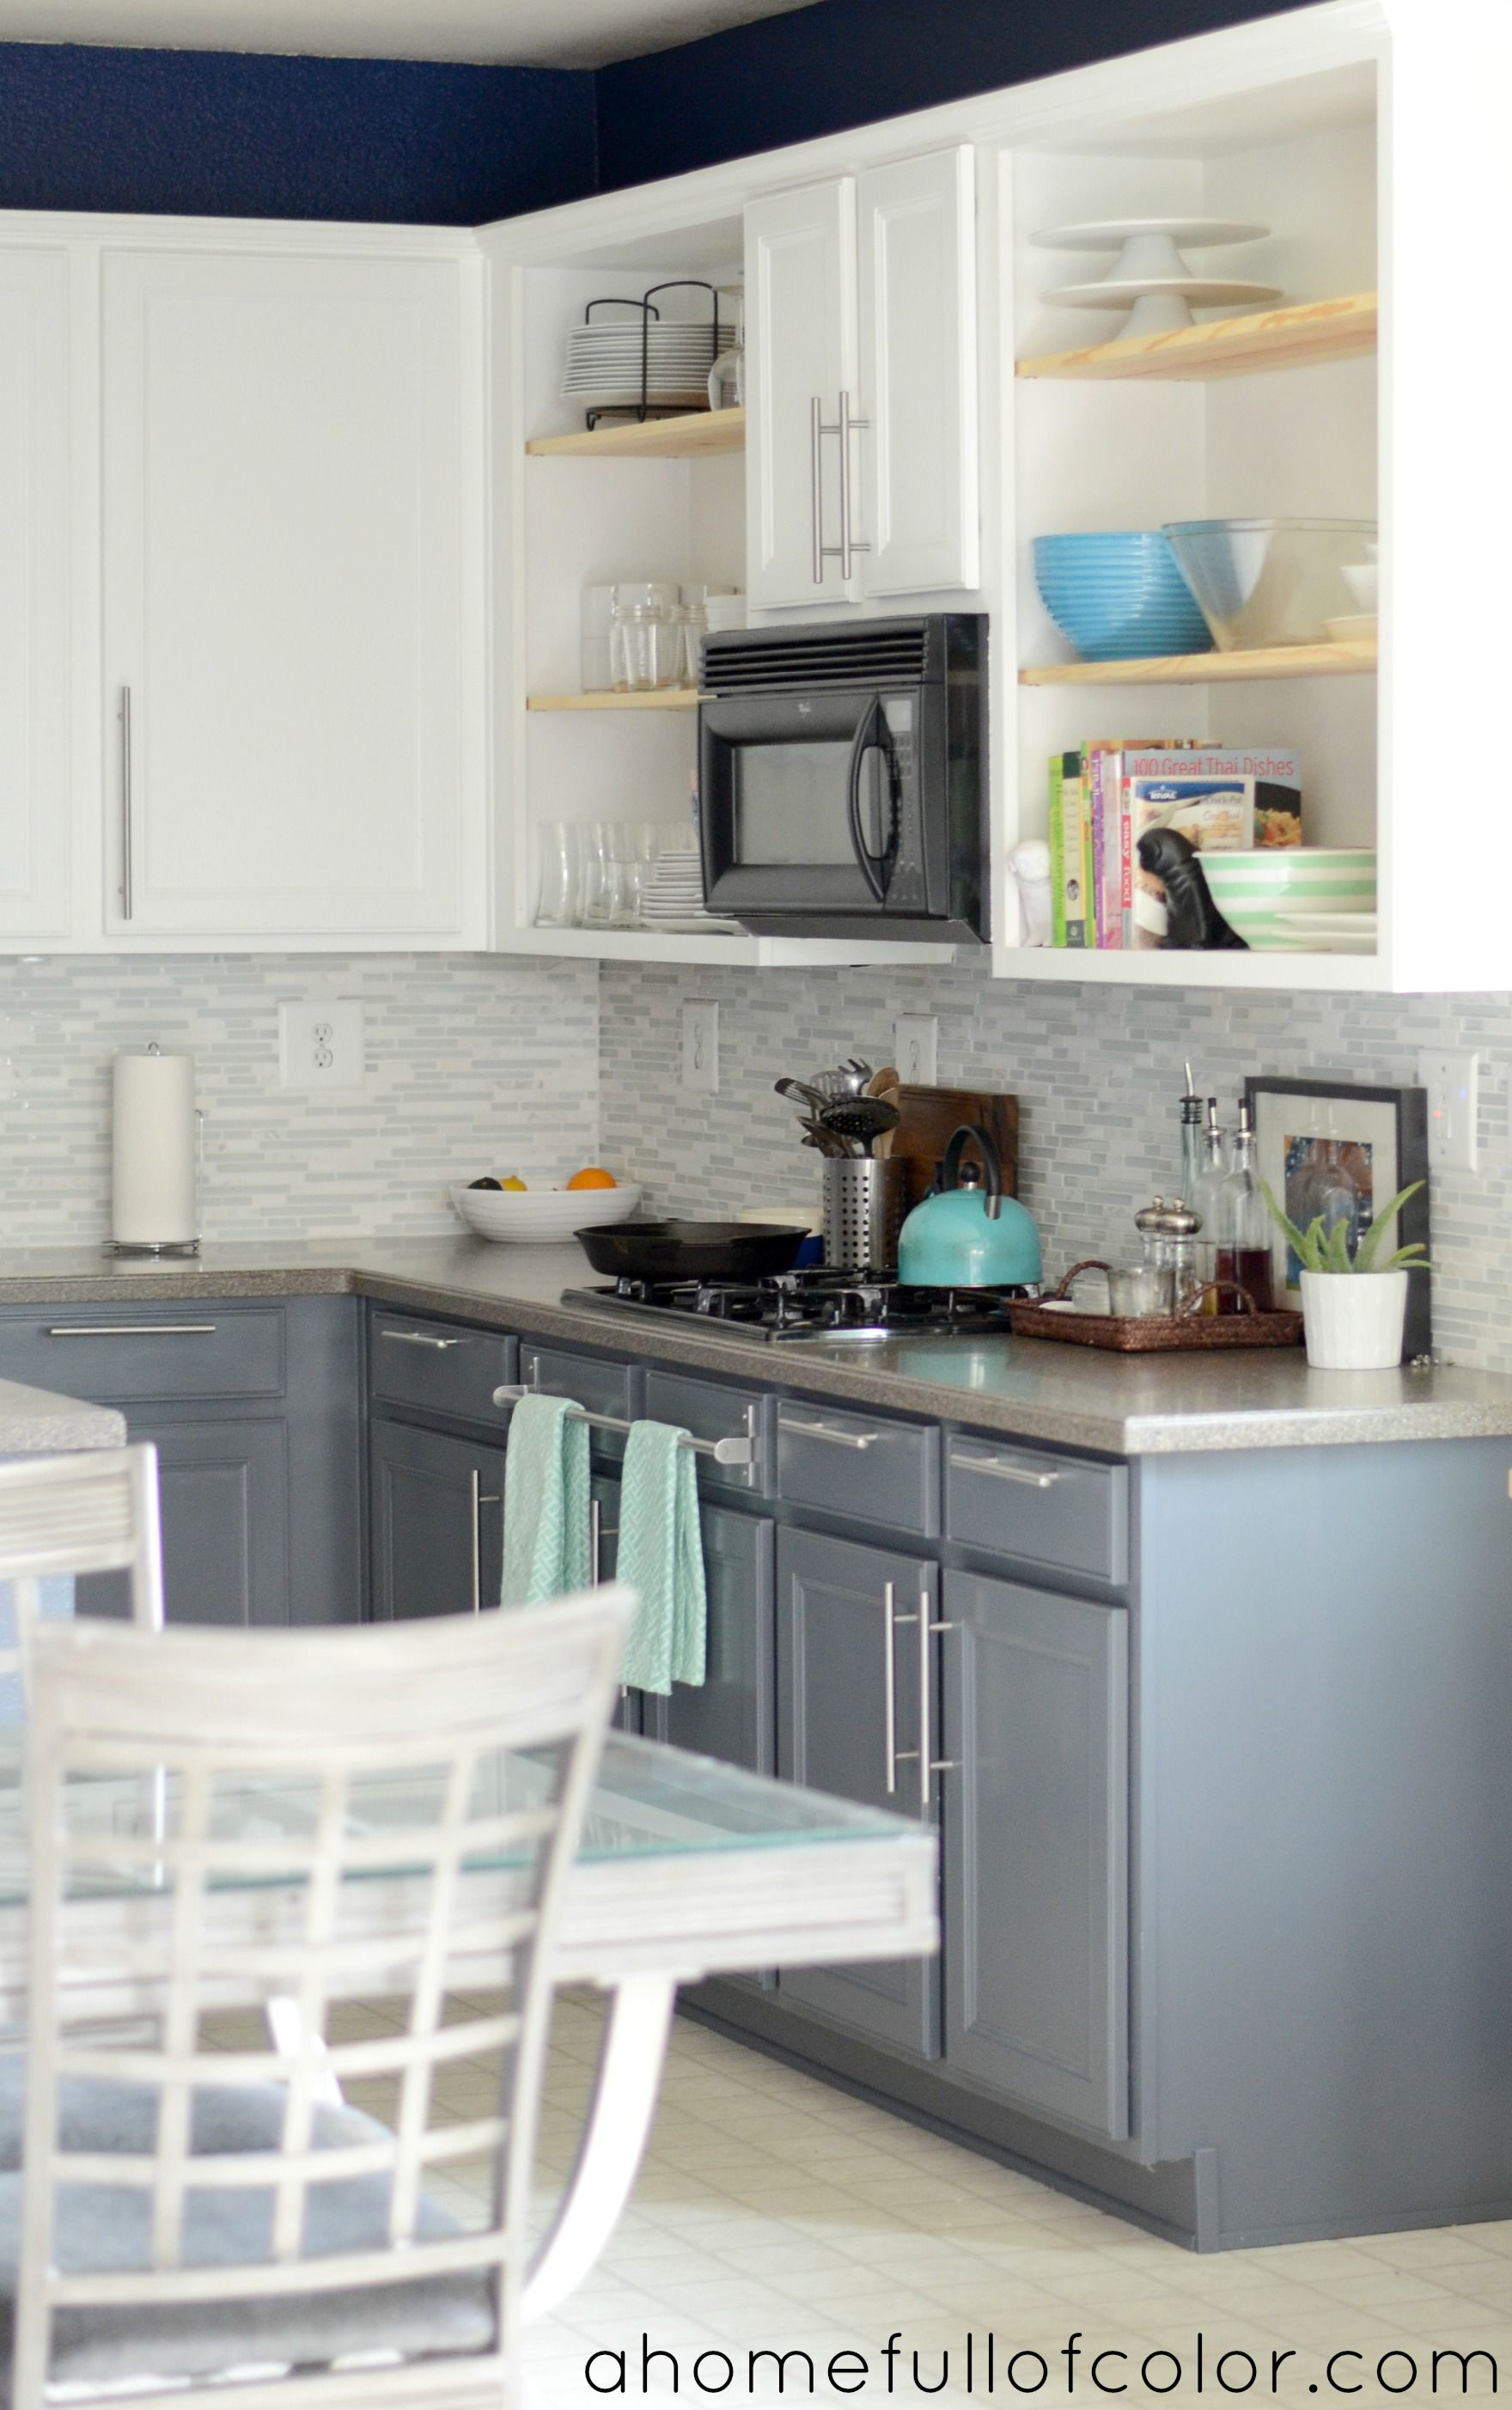 Painted Two Tone Kitchen Cabinets White Uppers And Gray Lowers Benjamin Moore Simply White